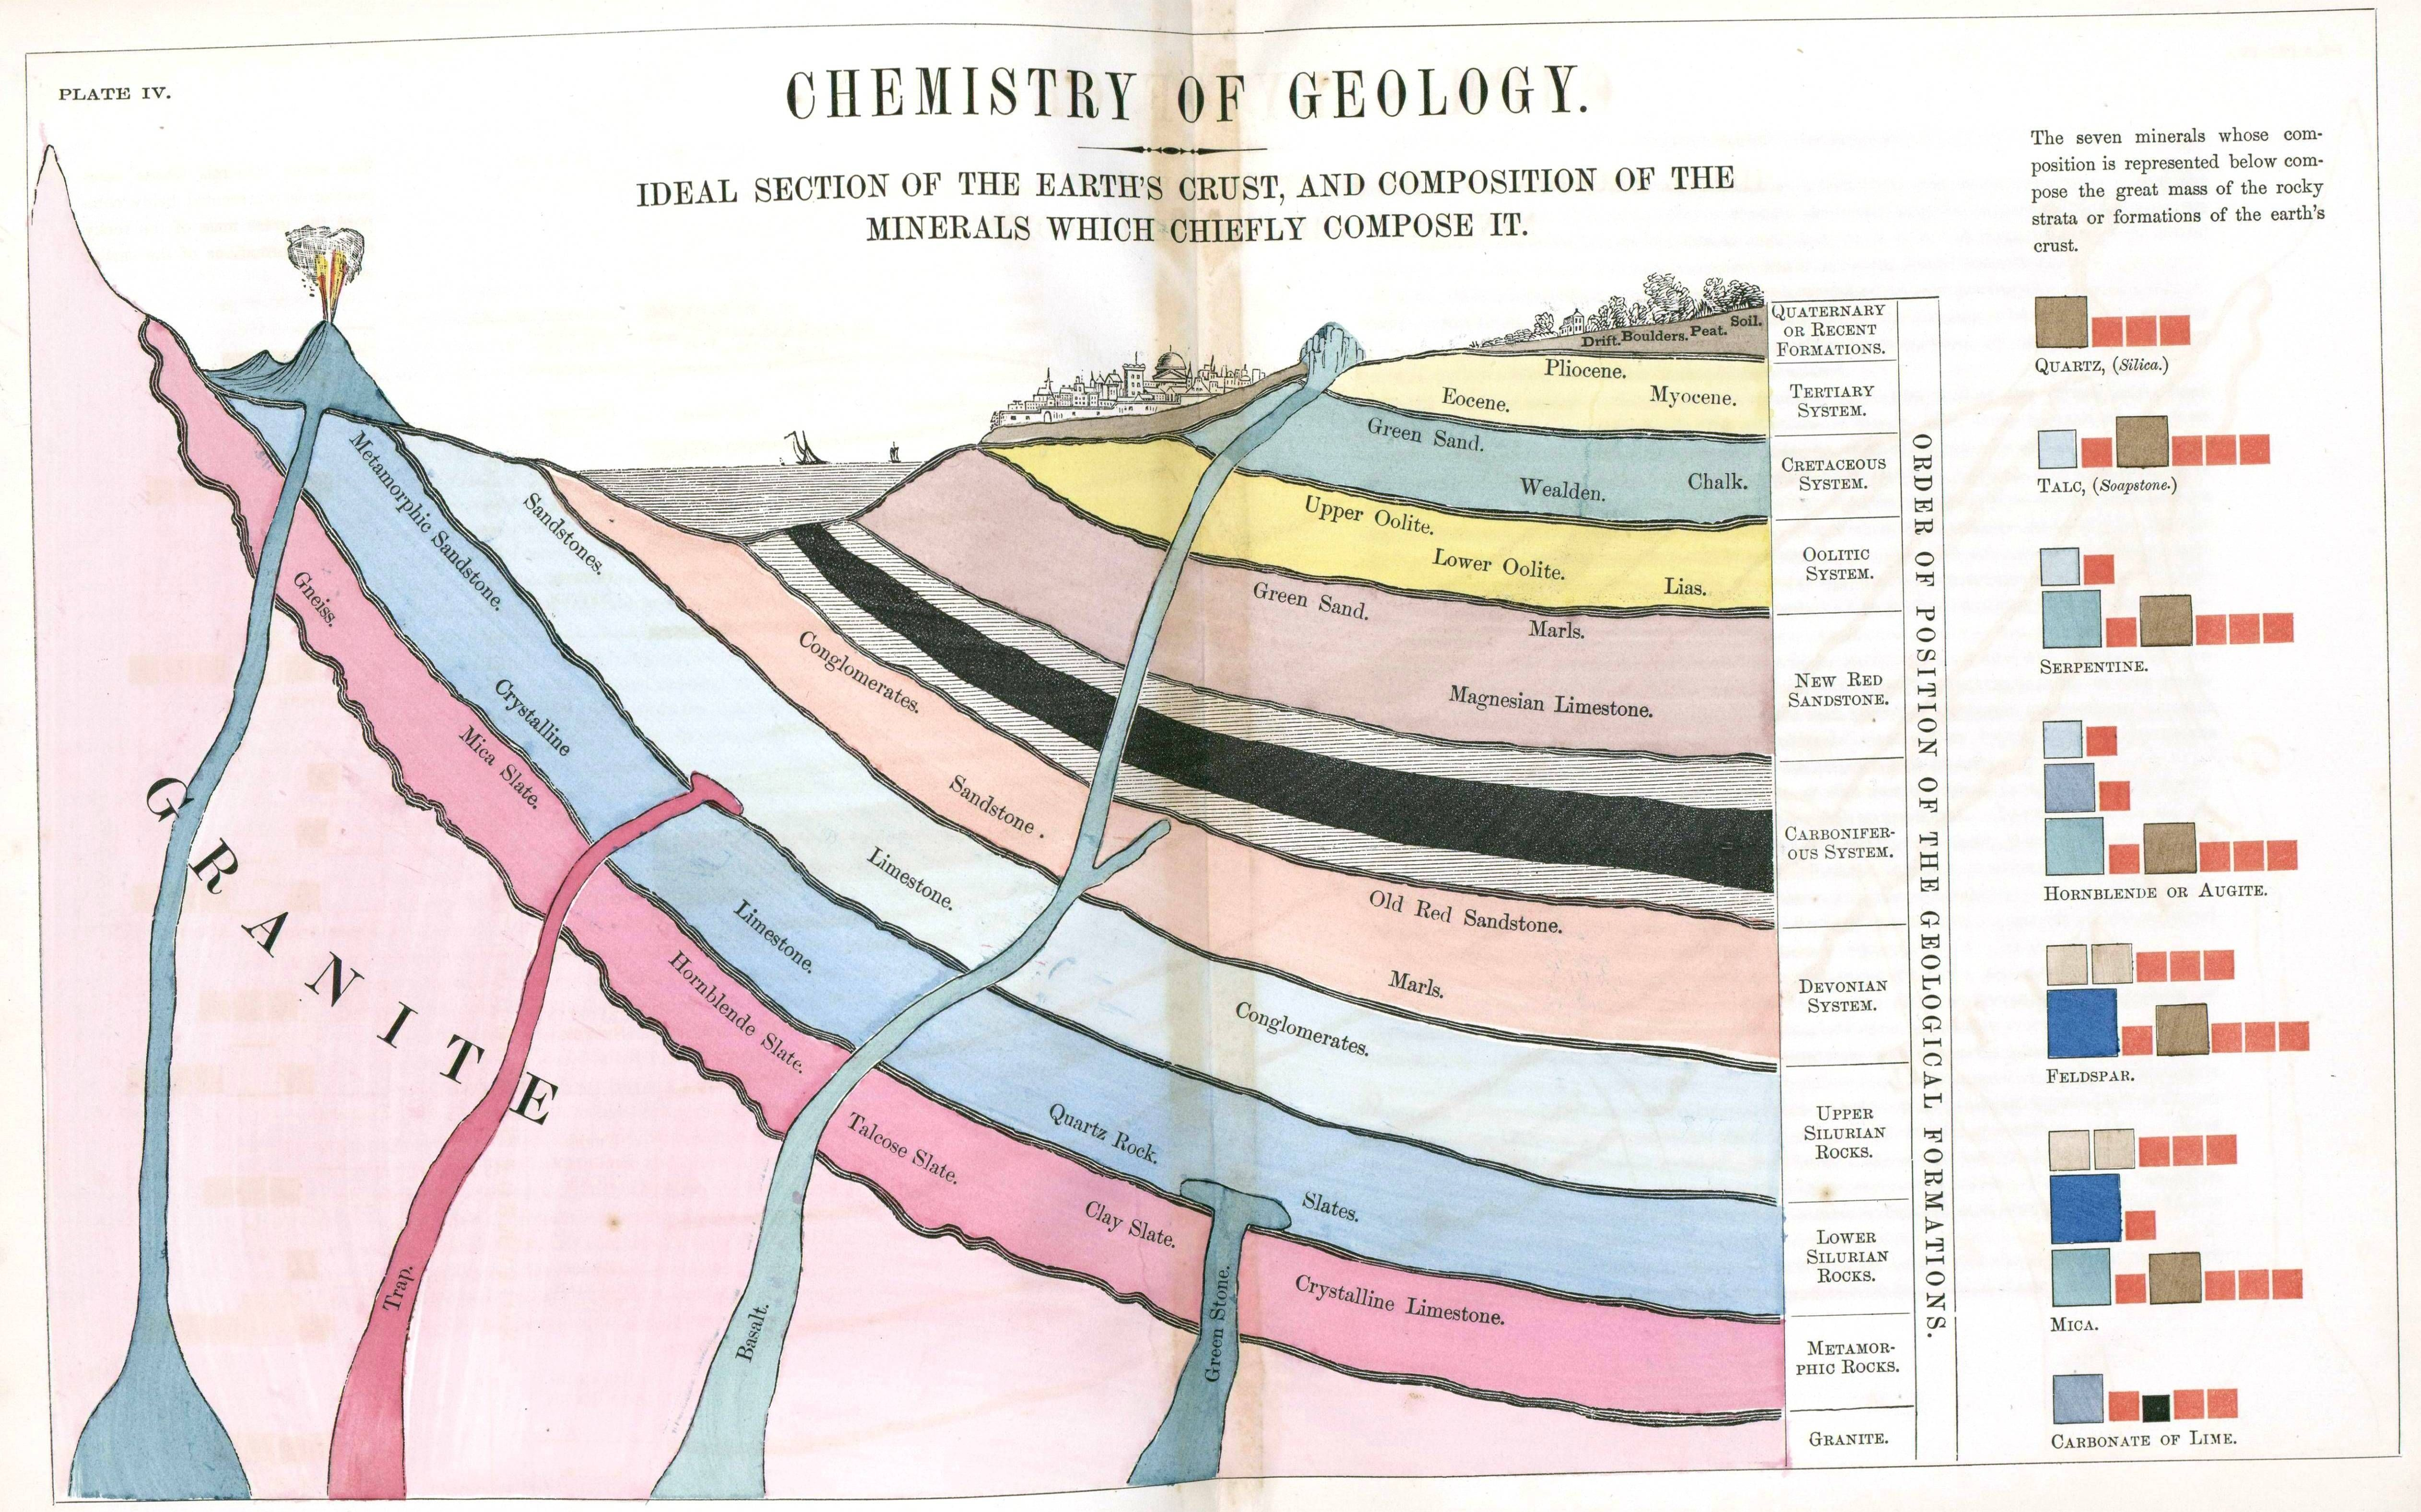 Ideal Section Of The Earth S Crust And Composition Of The Minerals Whih Chiefly Compose It